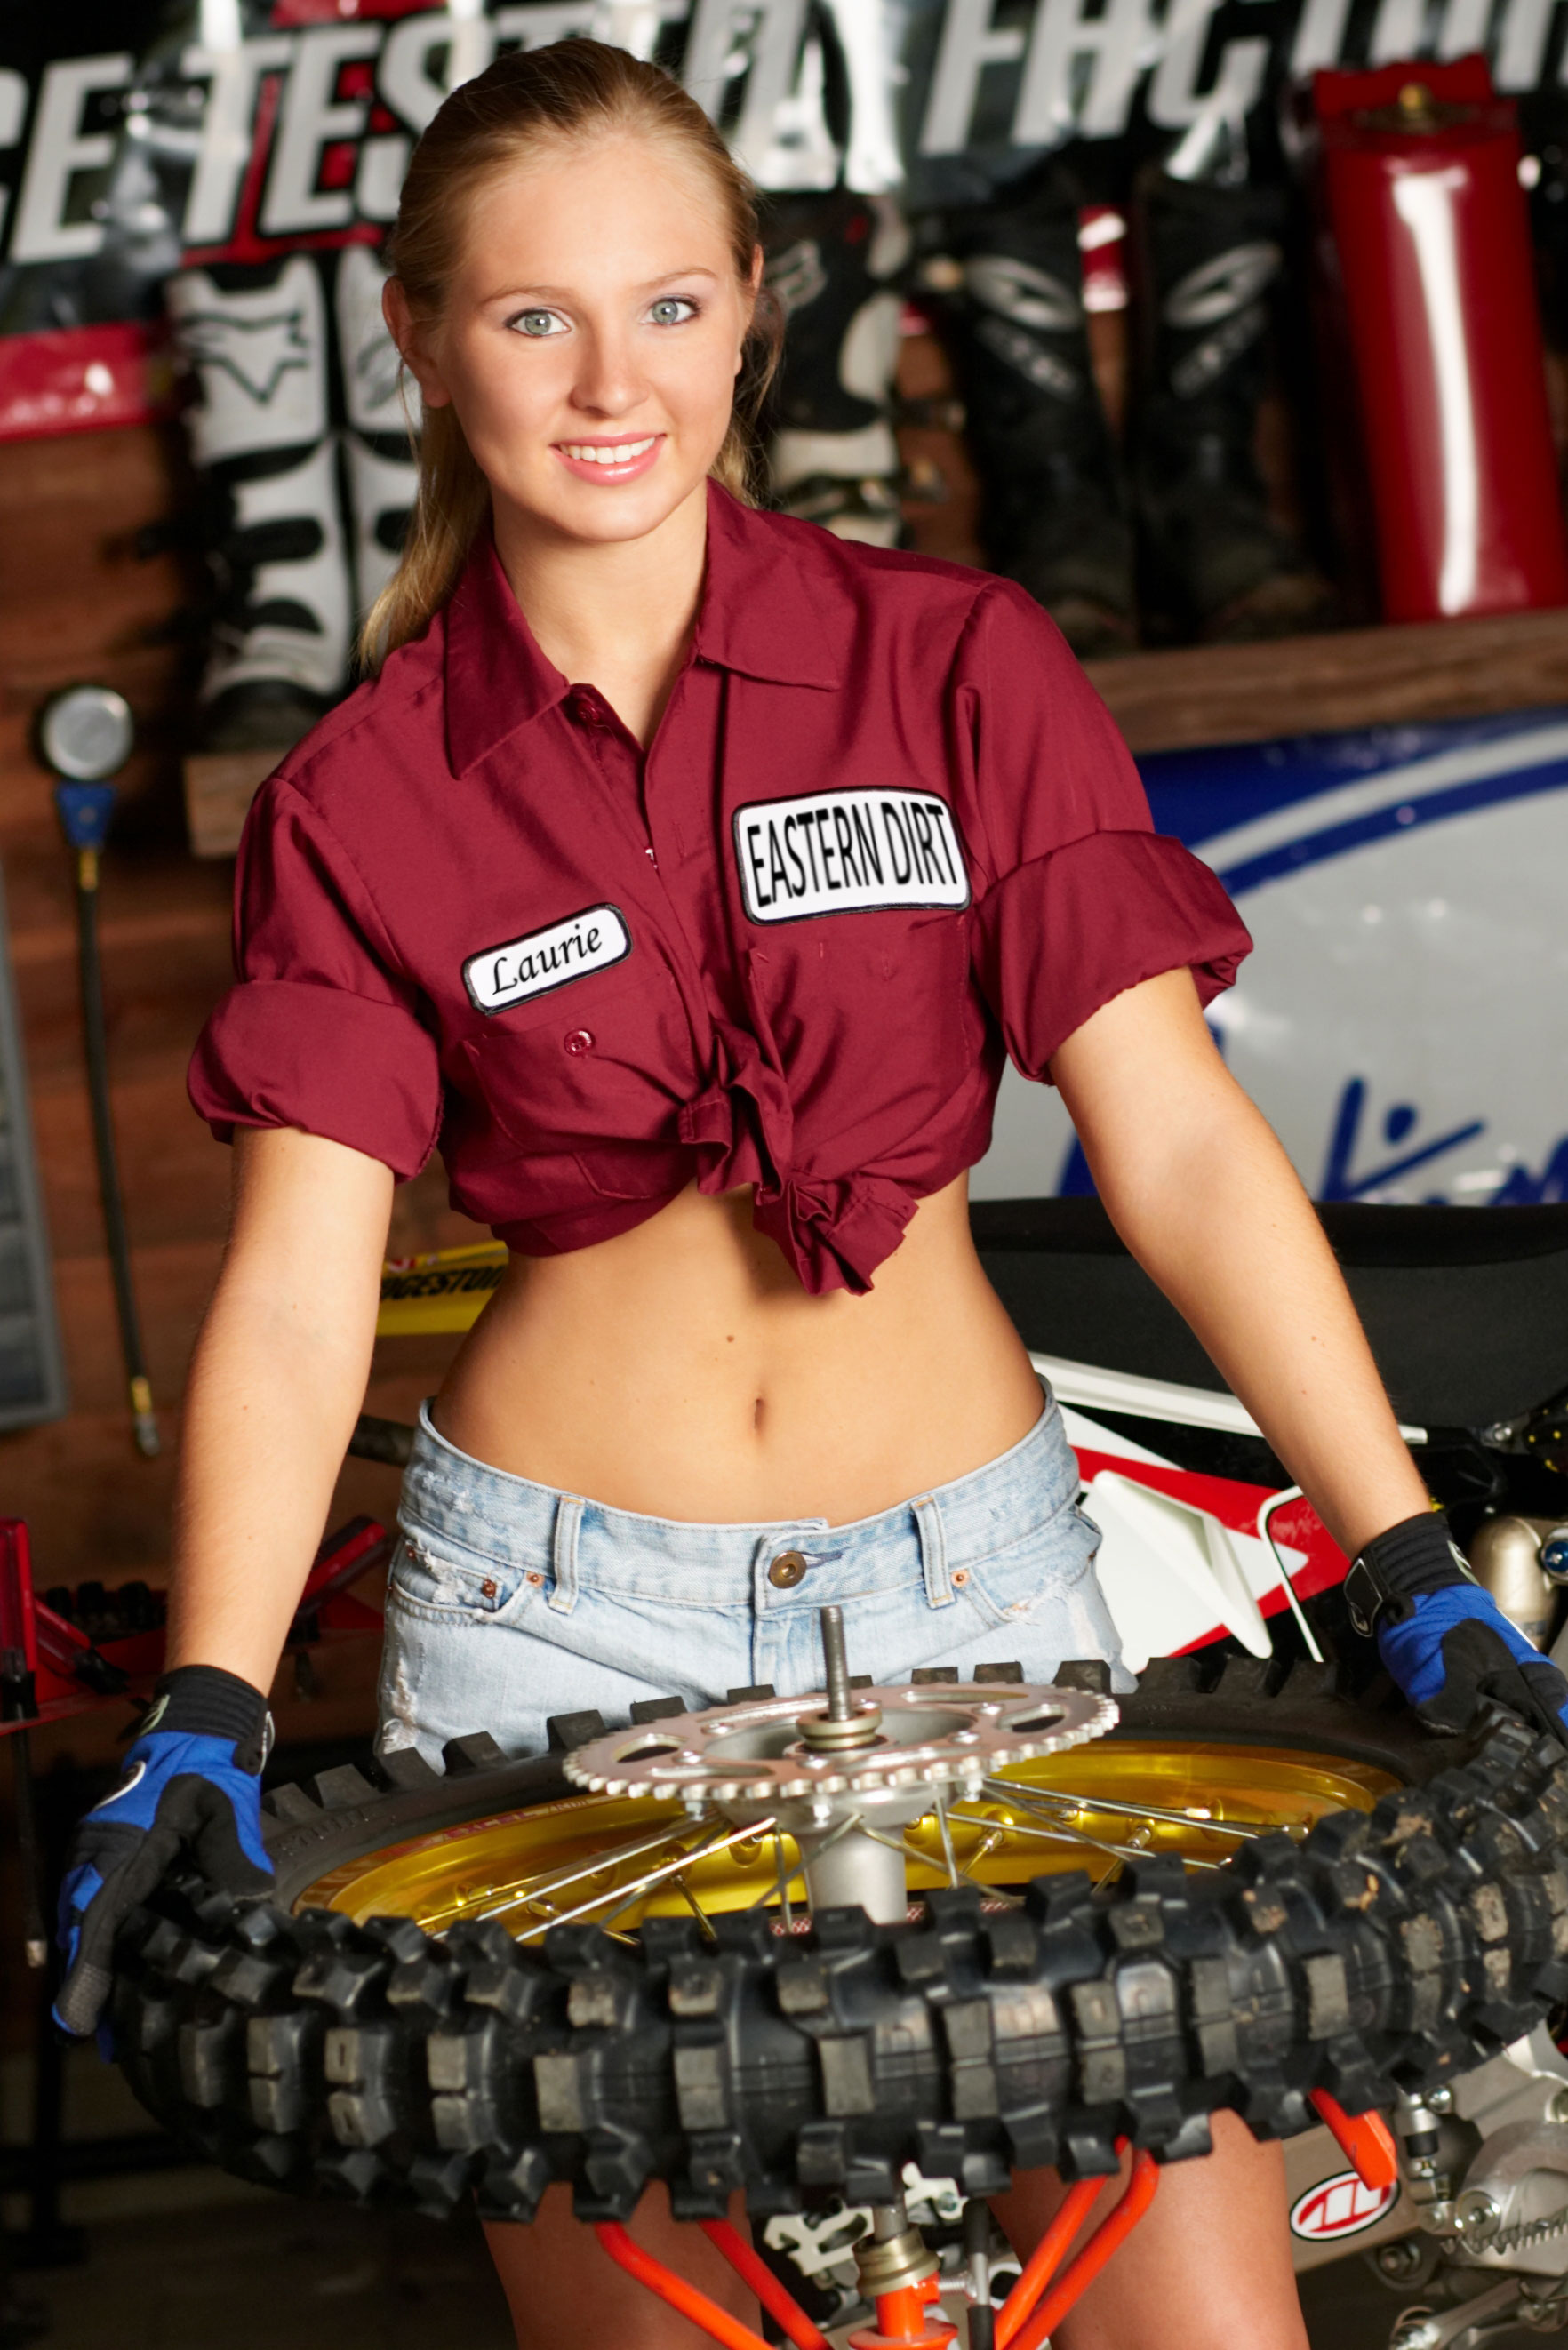 How To Change A Tire On Your Motocross Bike